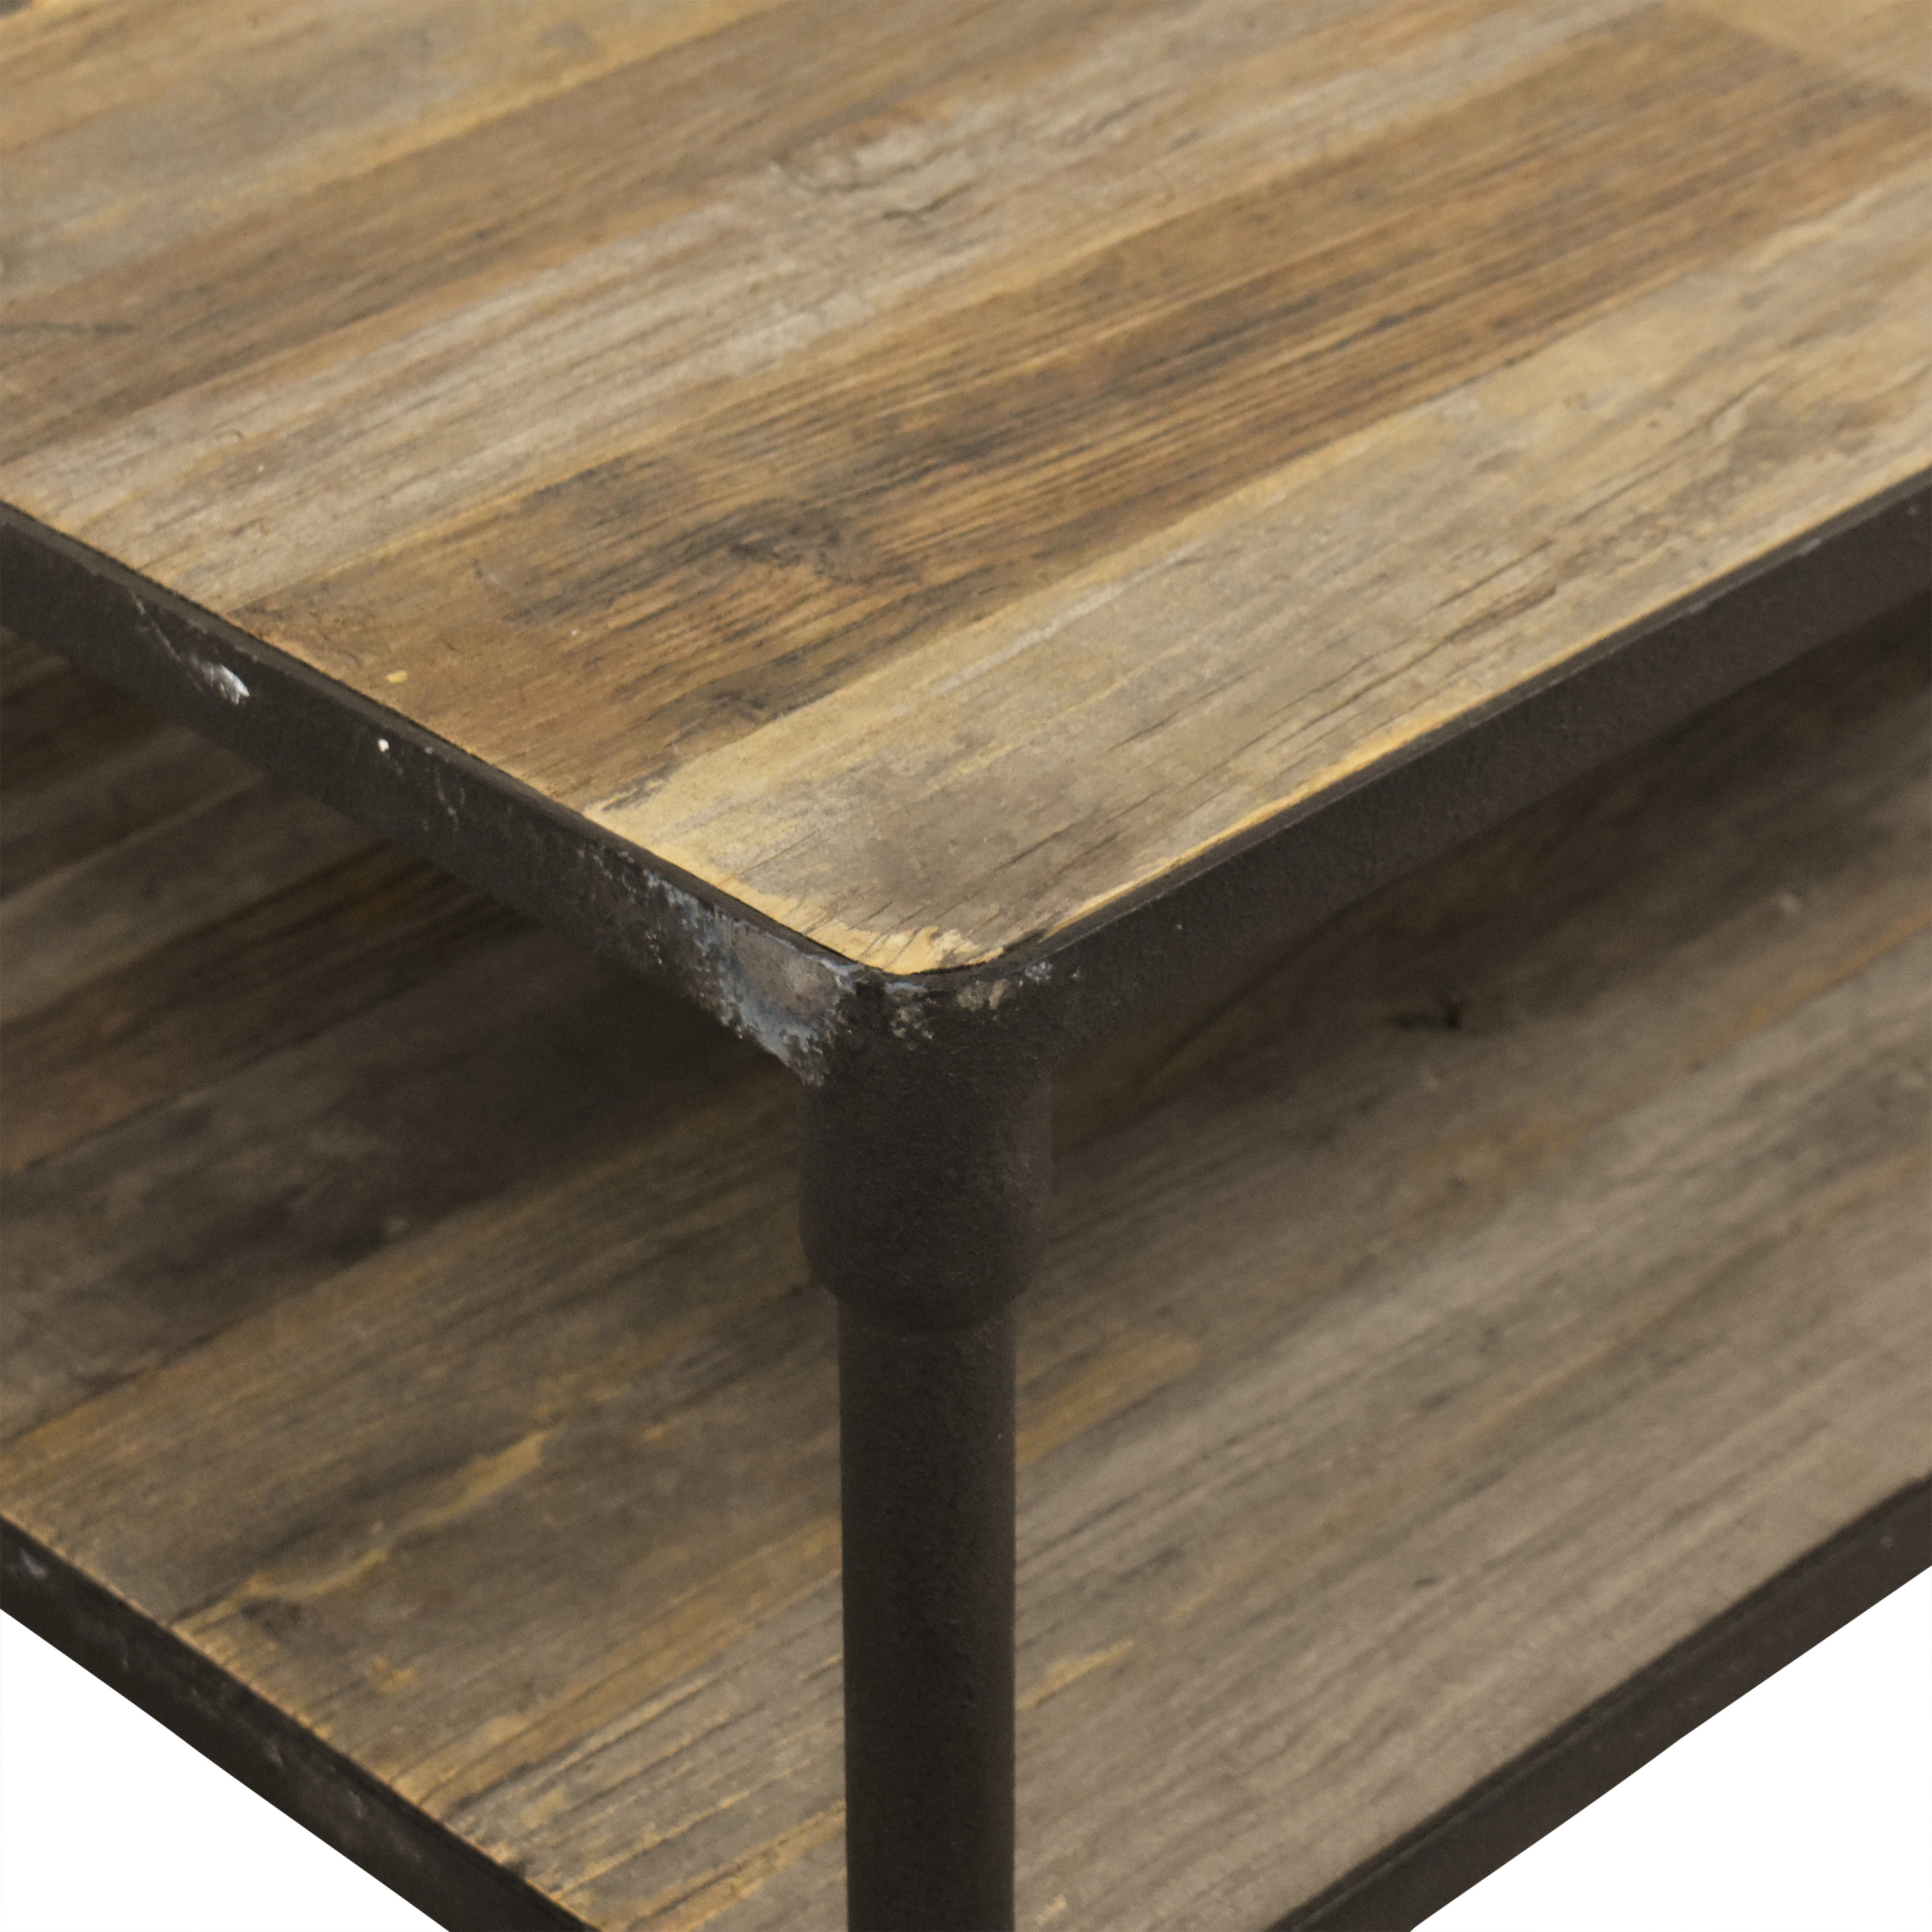 Restoration Hardware Restoration Hardware Dutch Industrial Coffee Table ct